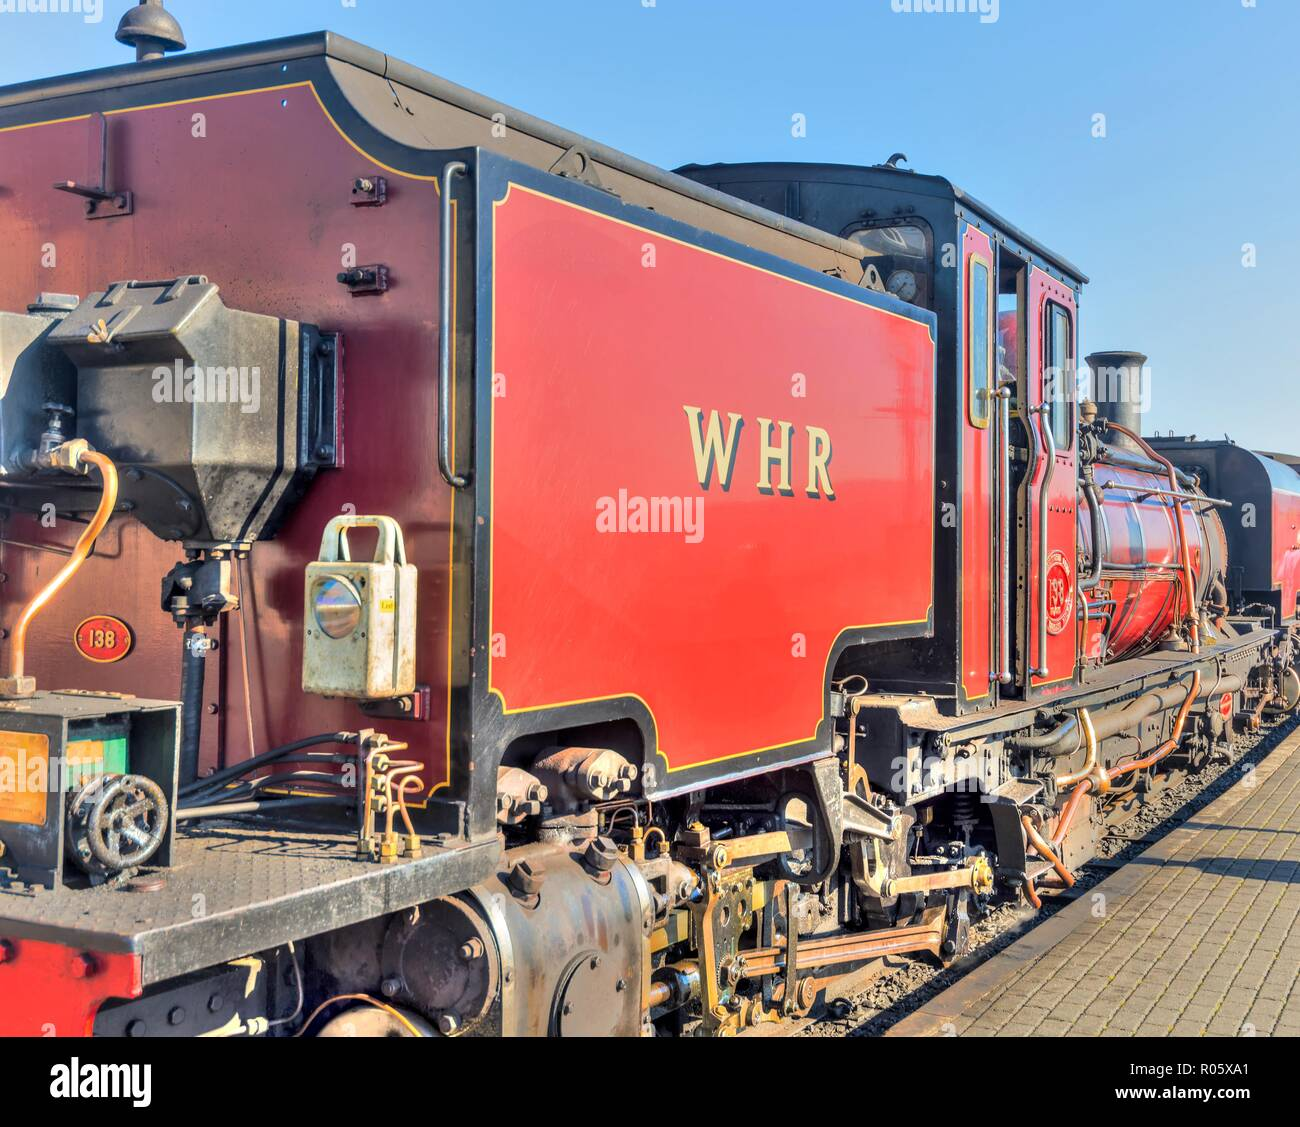 A nostalgic image of an old steam locomotive of the Ffestiniog and Welsh Highland Railway. - Stock Image